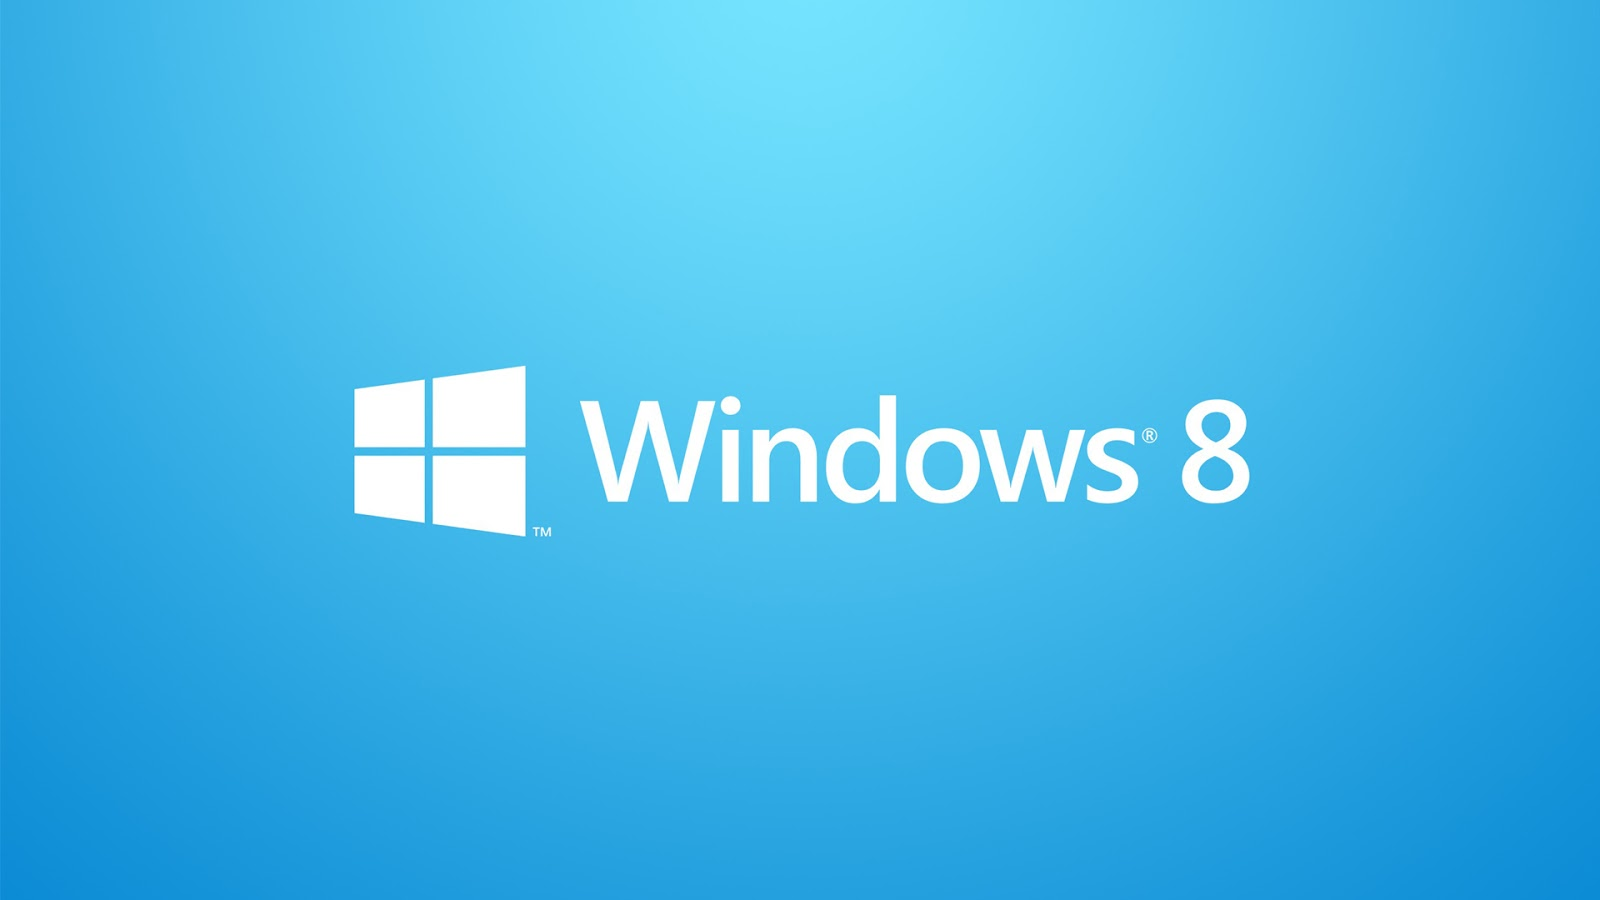 Windows 8 full hd wallpapers 1080p hd wallpapers high for Window definition